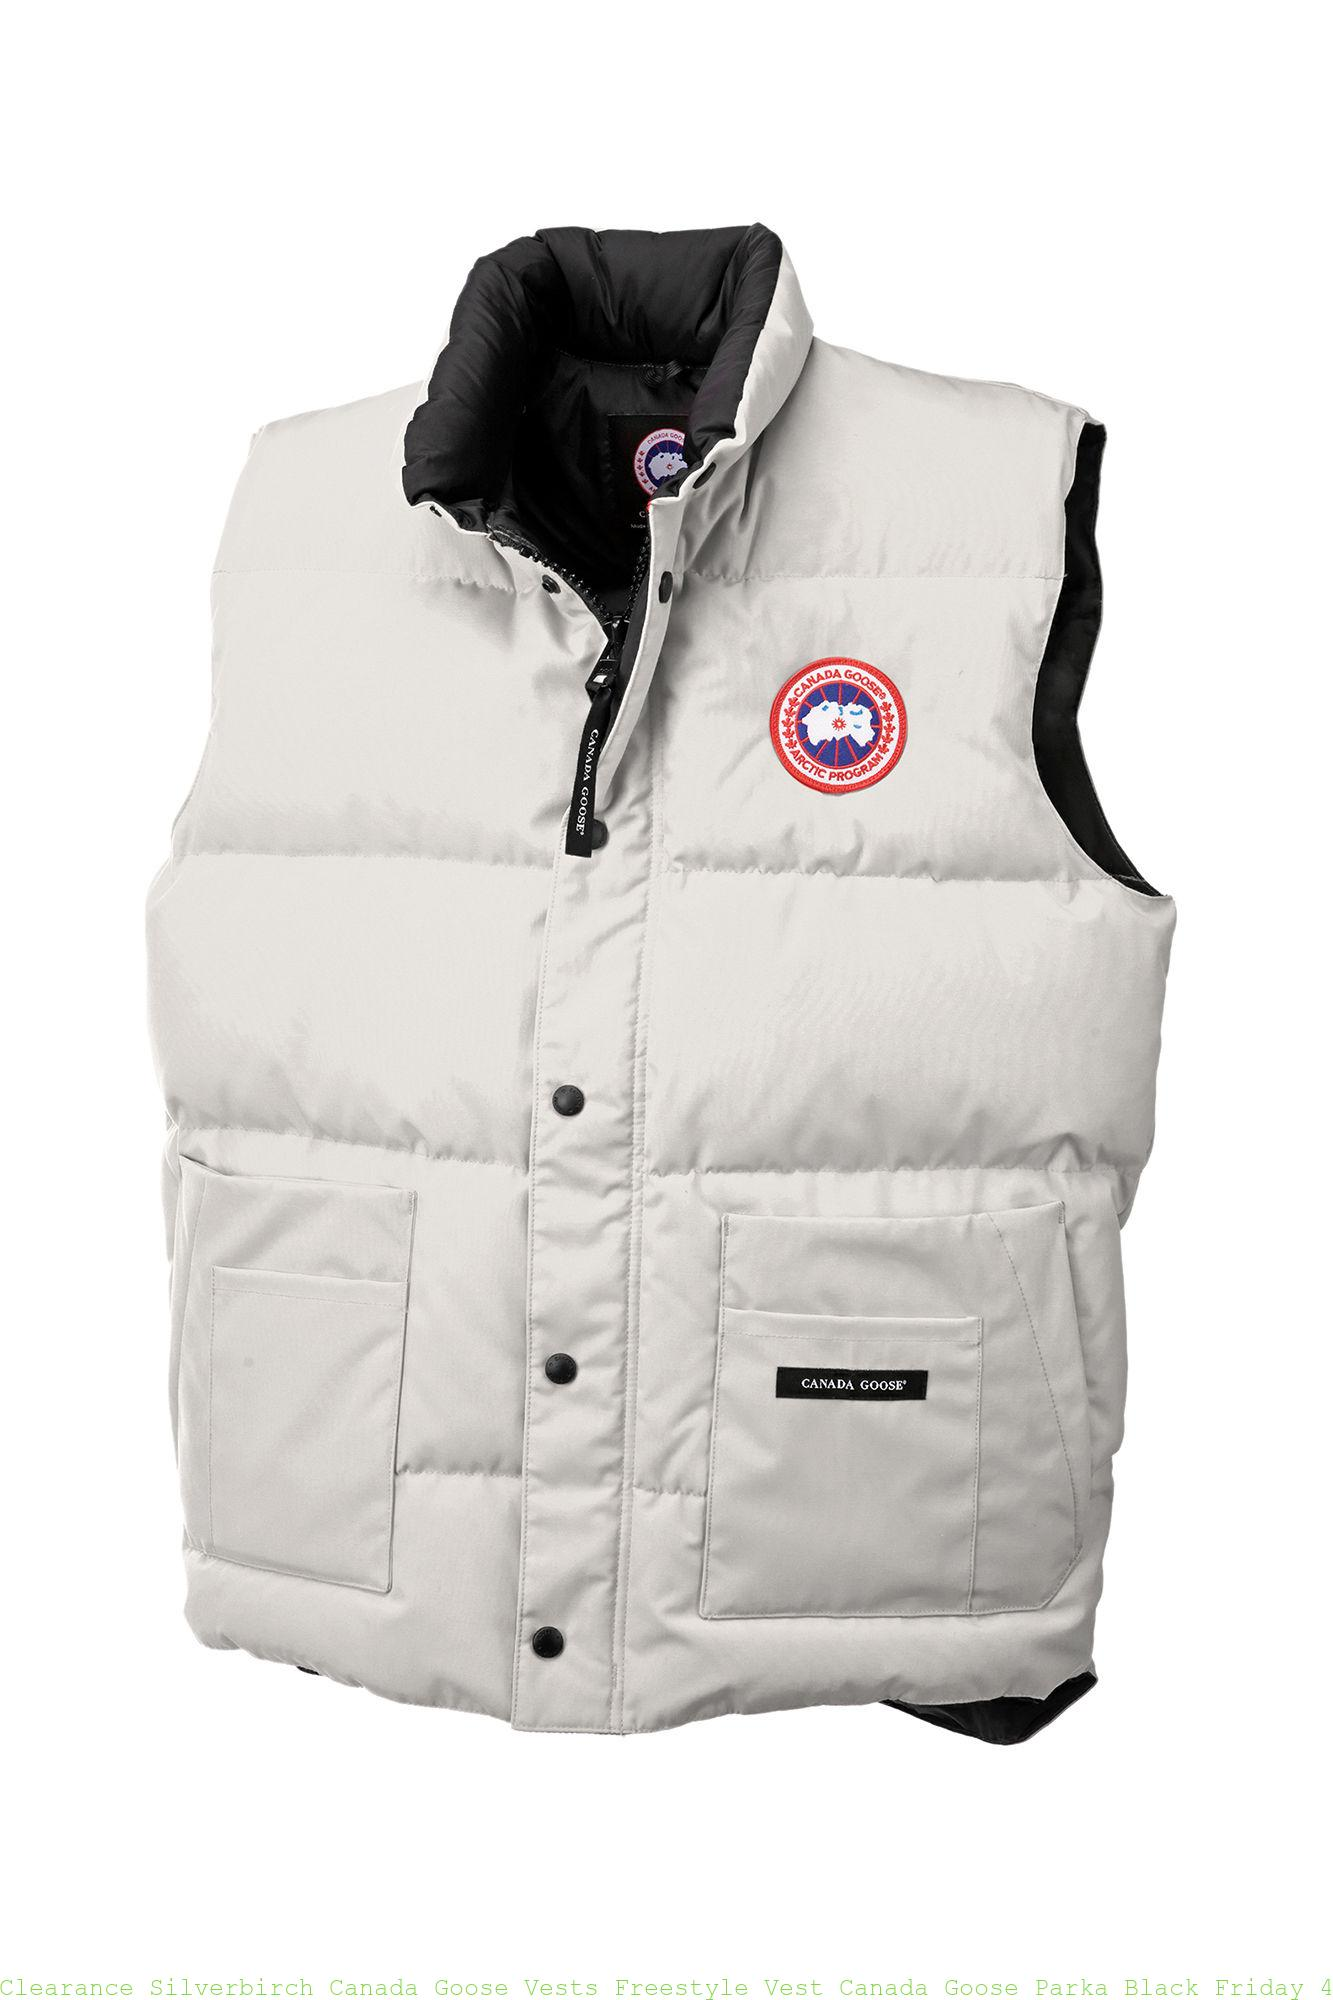 54e729fa599 Clearance Silverbirch Canada Goose Vests Freestyle Vest Canada Goose Parka  Black Friday 4150M